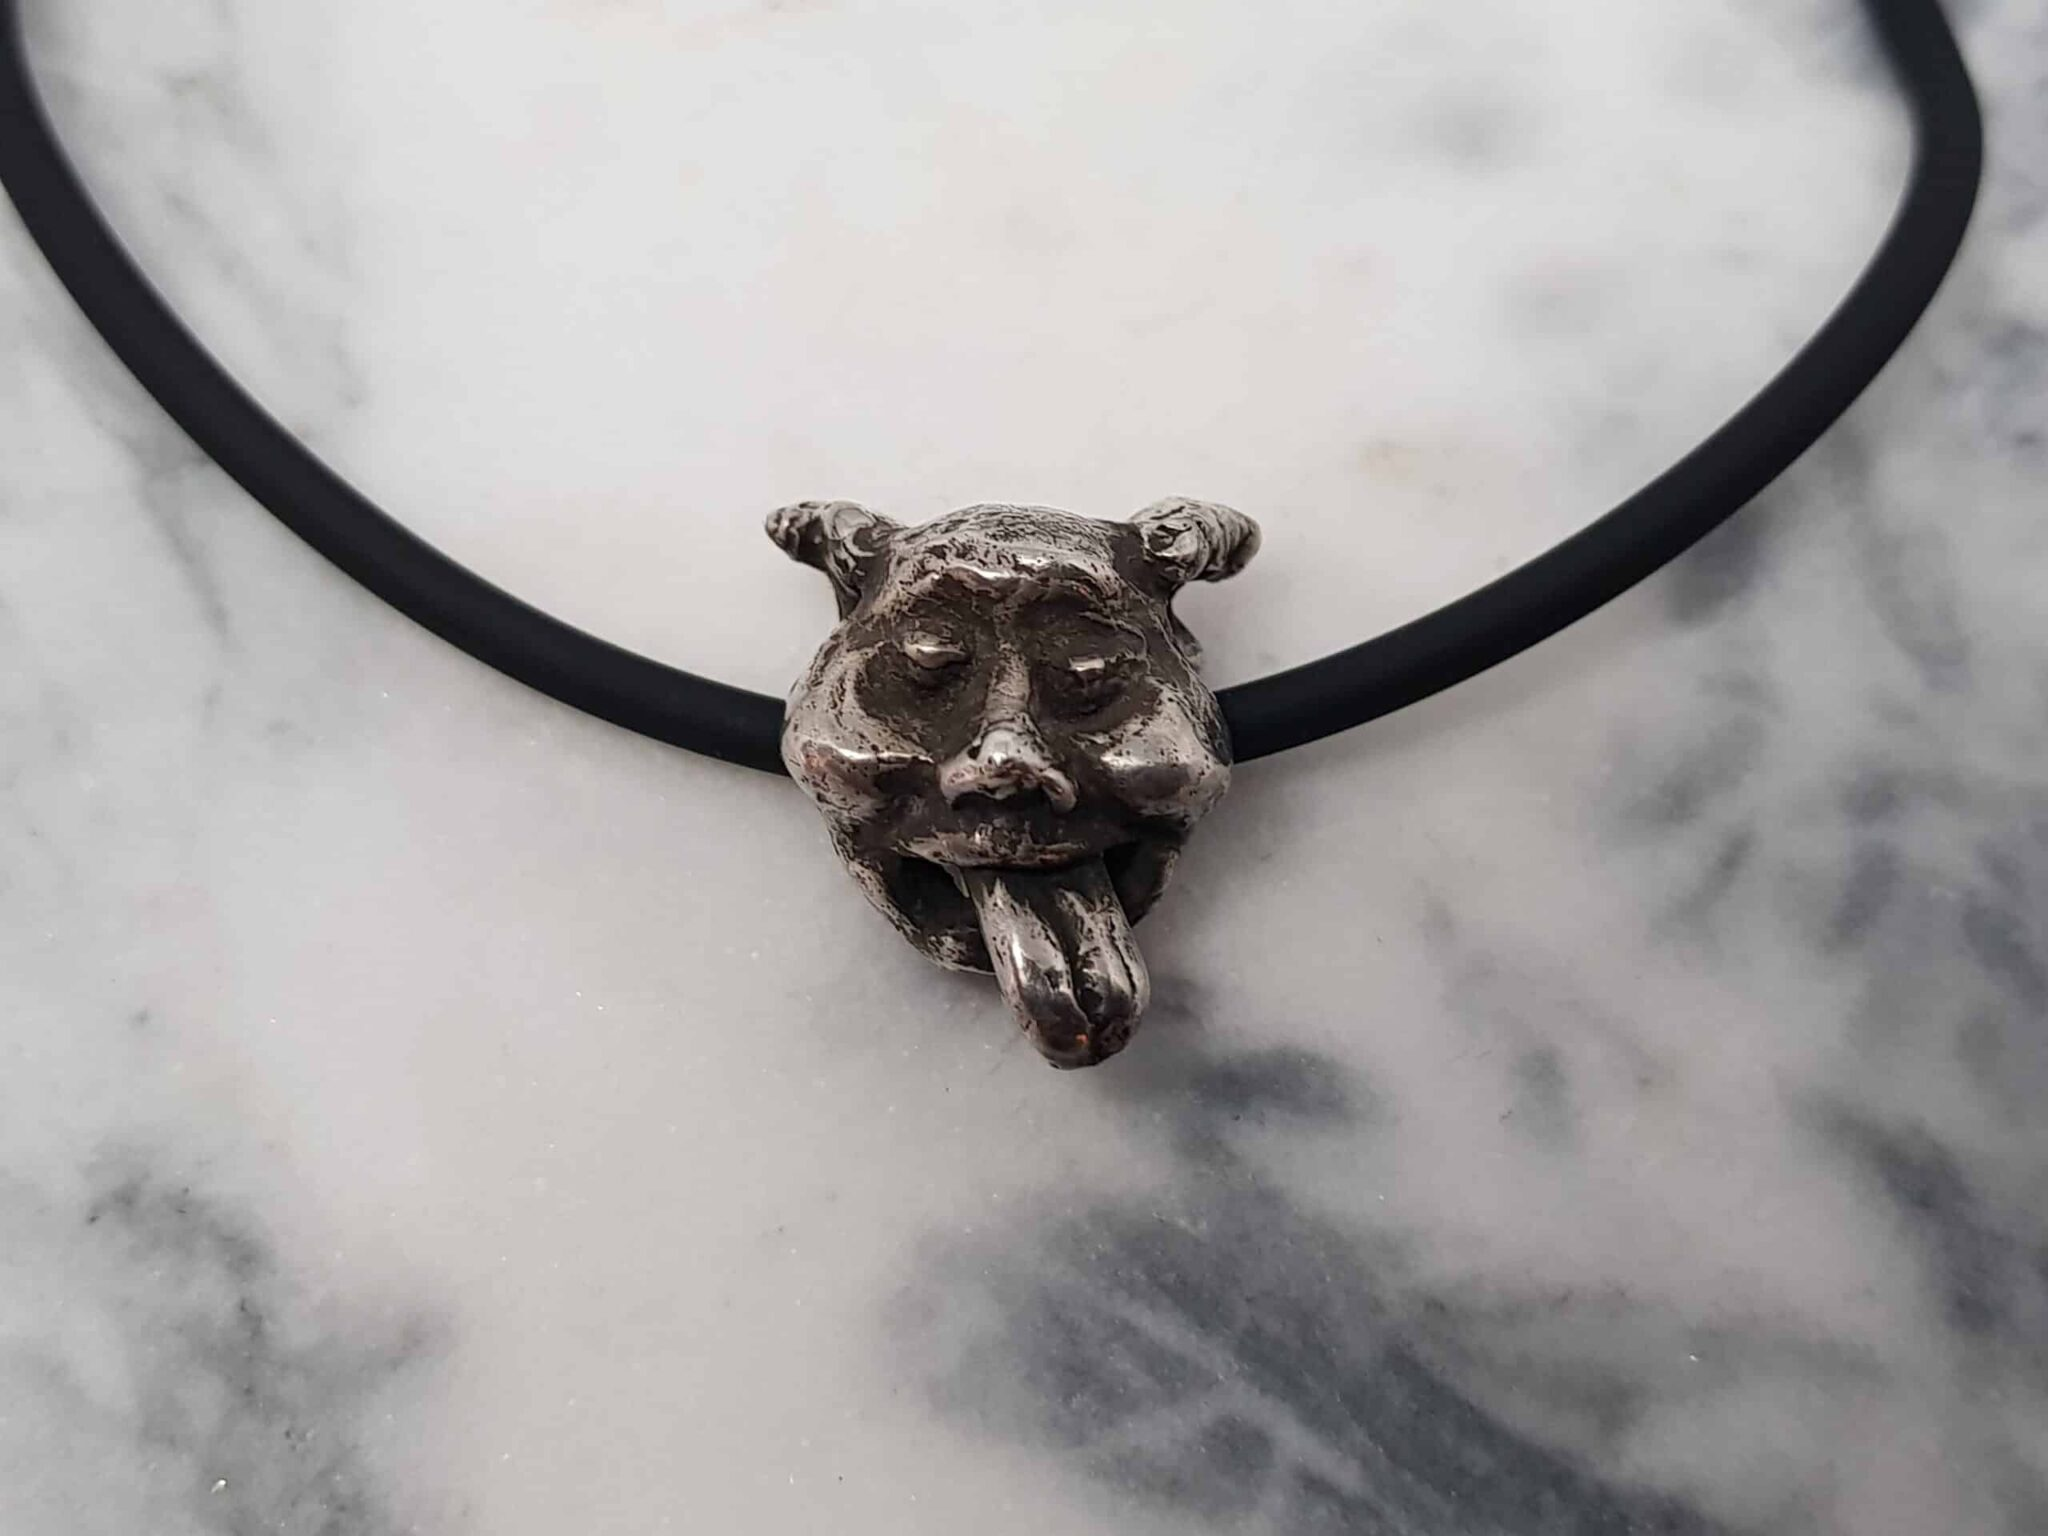 Gargoyle Sculptural Pendant On Neoprene Necklace By Corinne Lomon